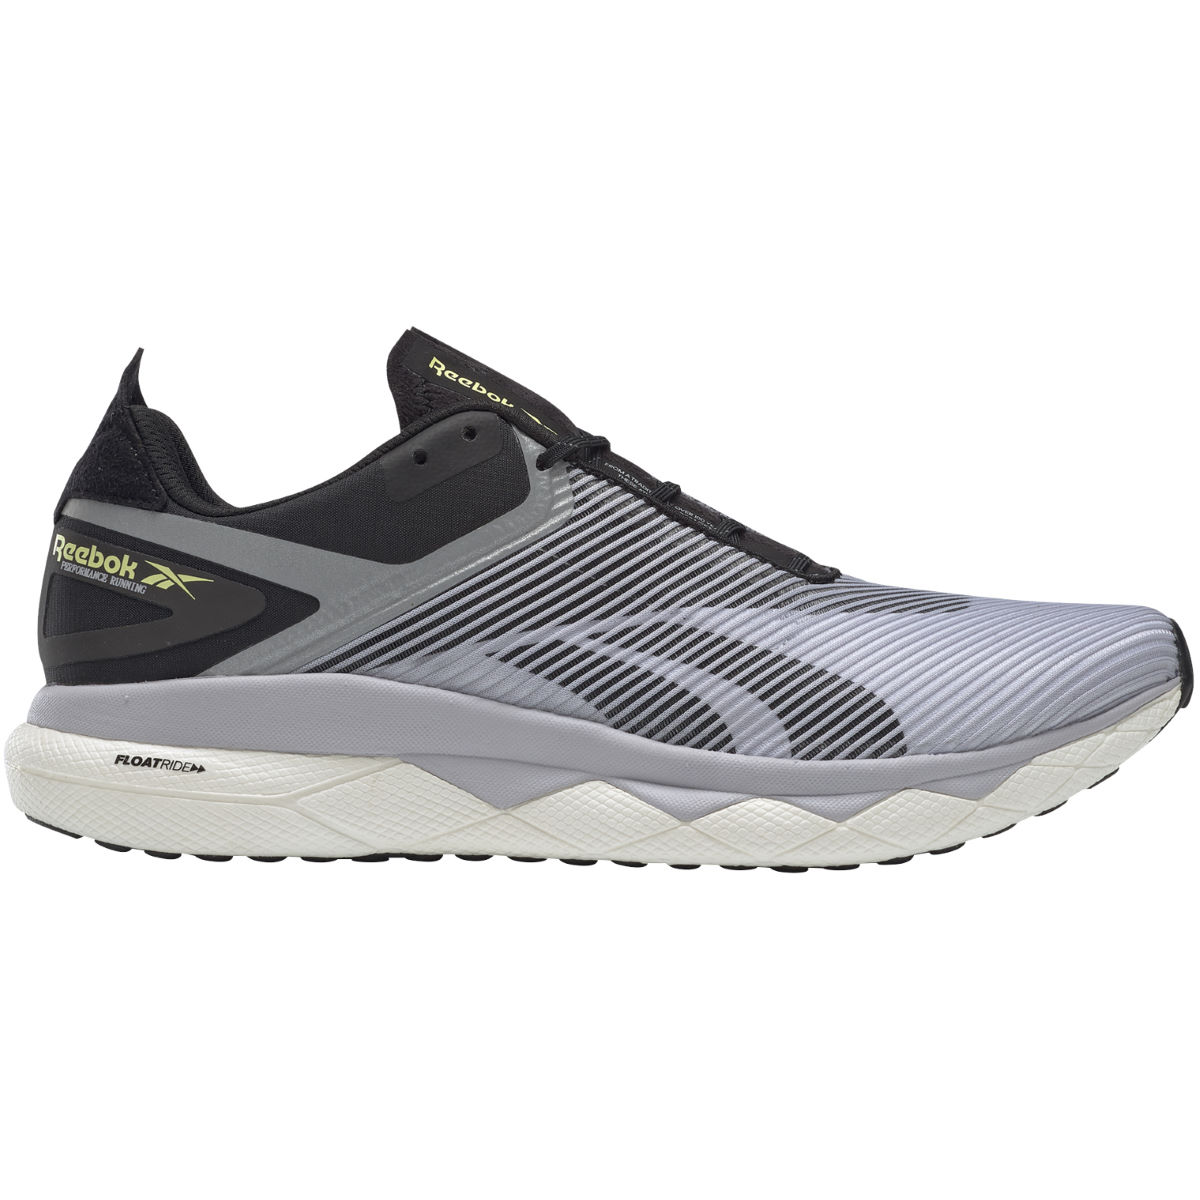 Reebok Reebok Floatride Panthea Running Shoe   Running Shoes